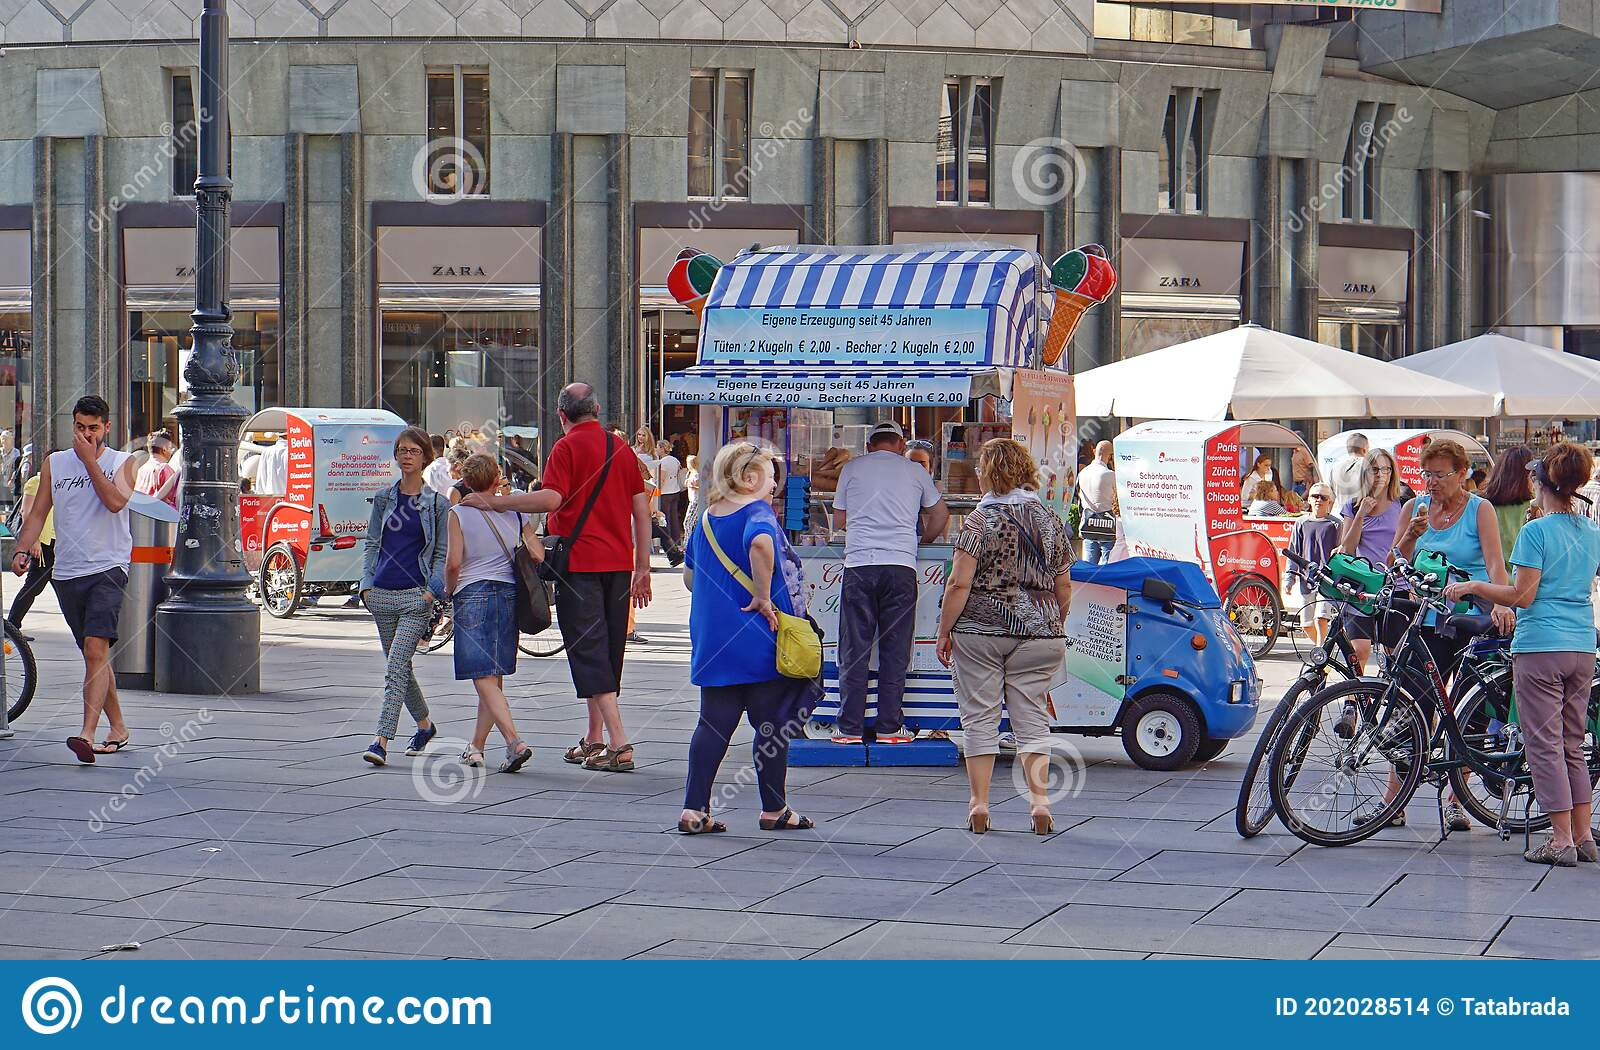 Hot Wien Photos Free Royalty Free Stock Photos From Dreamstime